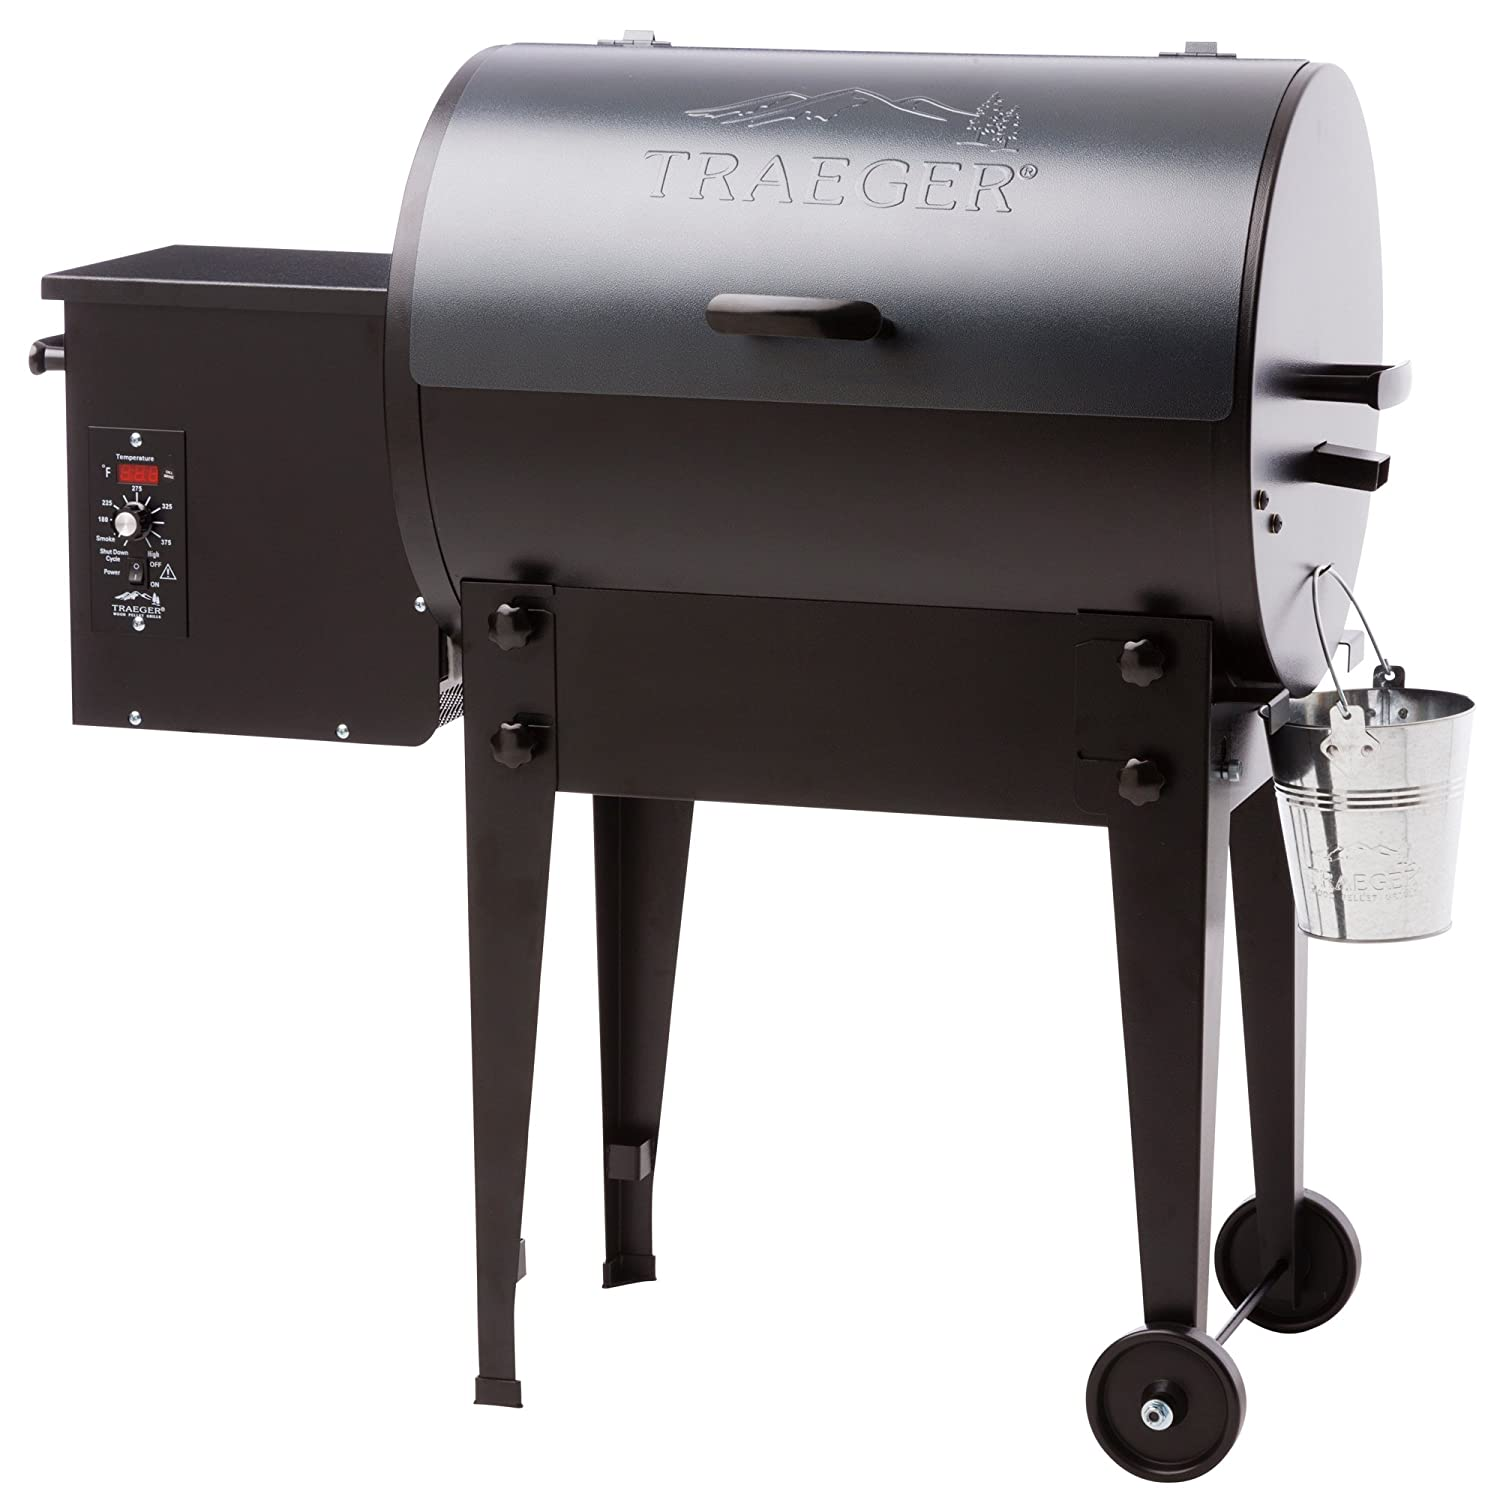 Traeger Grills Tailgater 20 Portable Wood Pellet Grill and Smoker